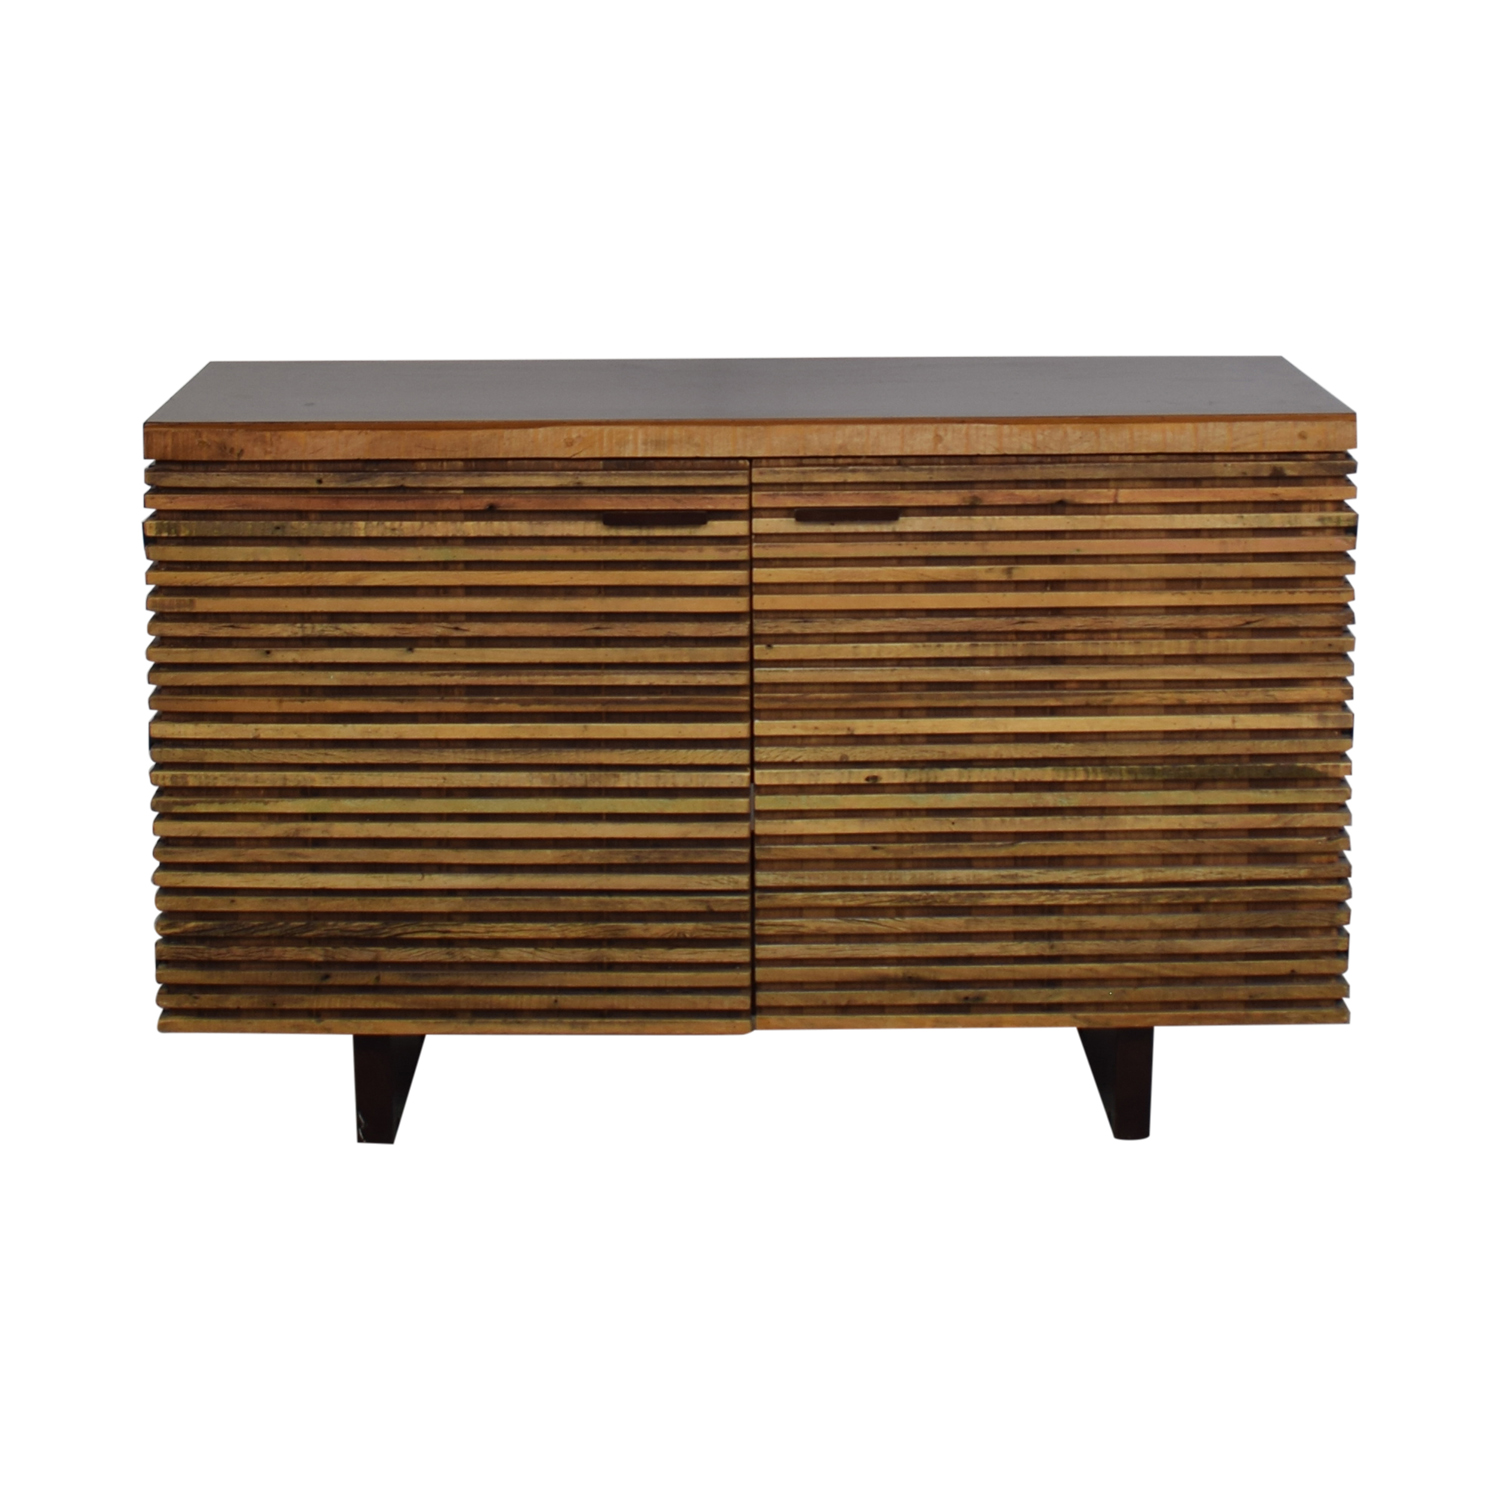 Crate & Barrel Crate & Barrel Paloma Two-Door Credenza for sale